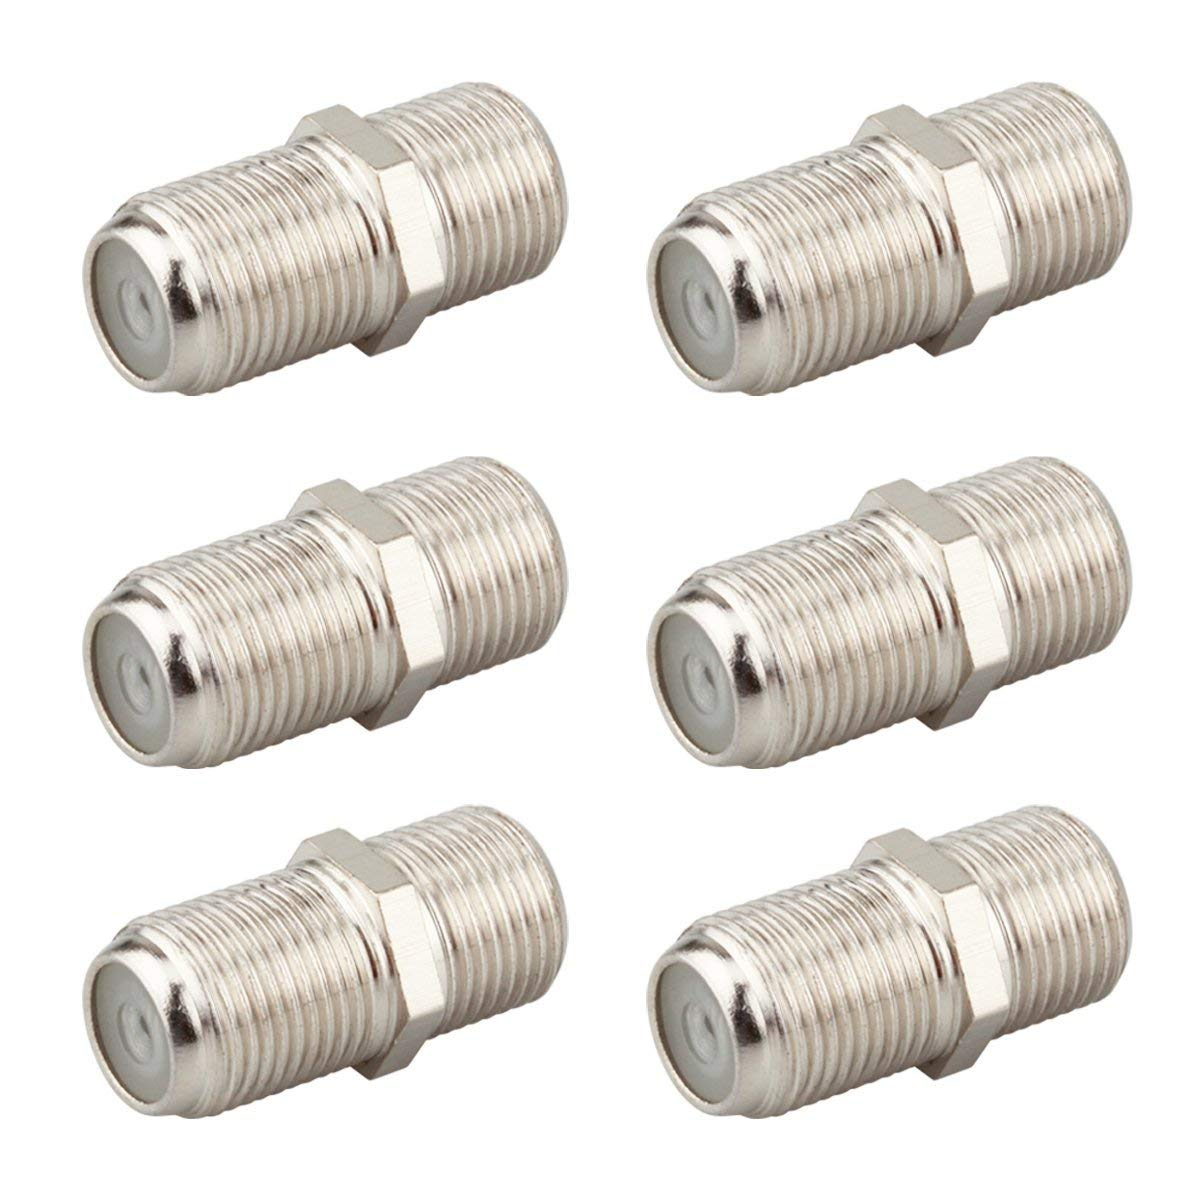 KOSMA (6-Pack) F-Type RG6 Female ot Female Coax Cable Adapter Connector for Coaxial Video Cables Extension